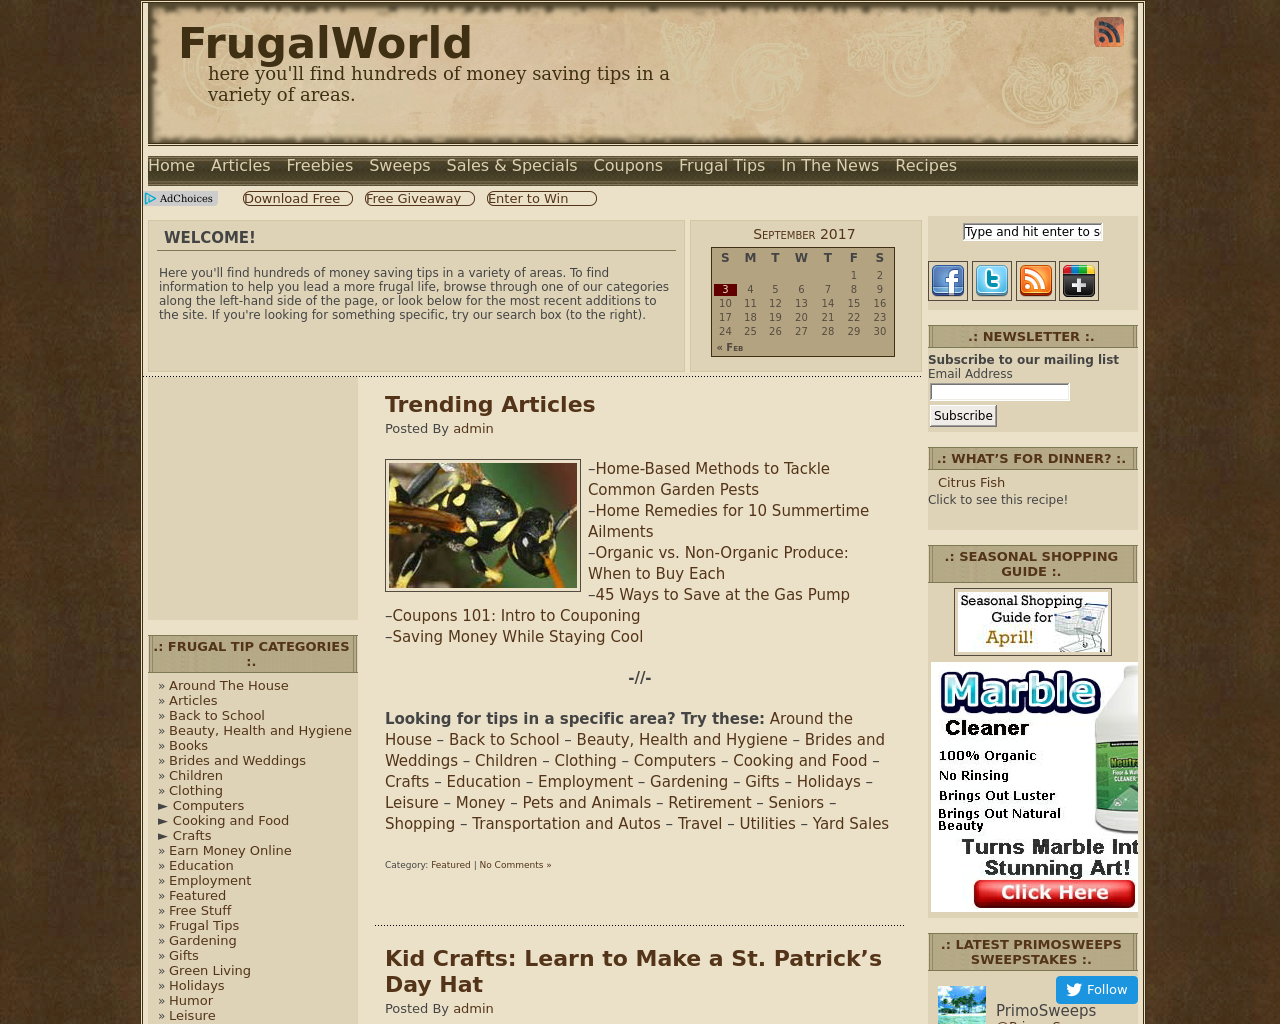 FrugalWorld-Advertising-Reviews-Pricing